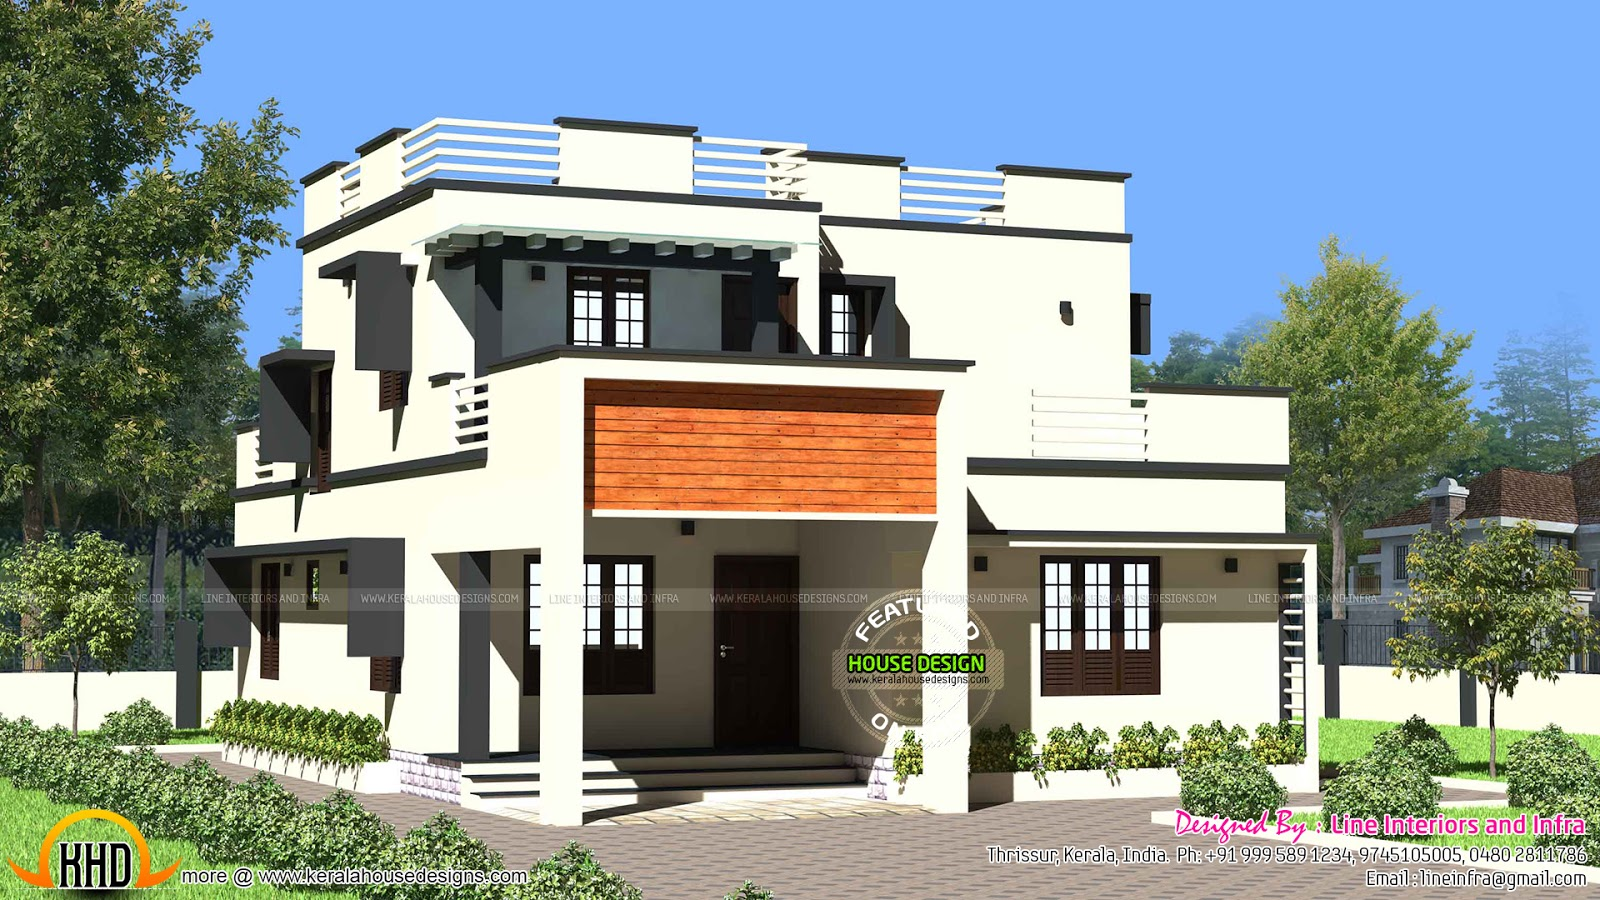 1900 sq ft modern flat roof house kerala home design and for Pictures of house designs and floor plans